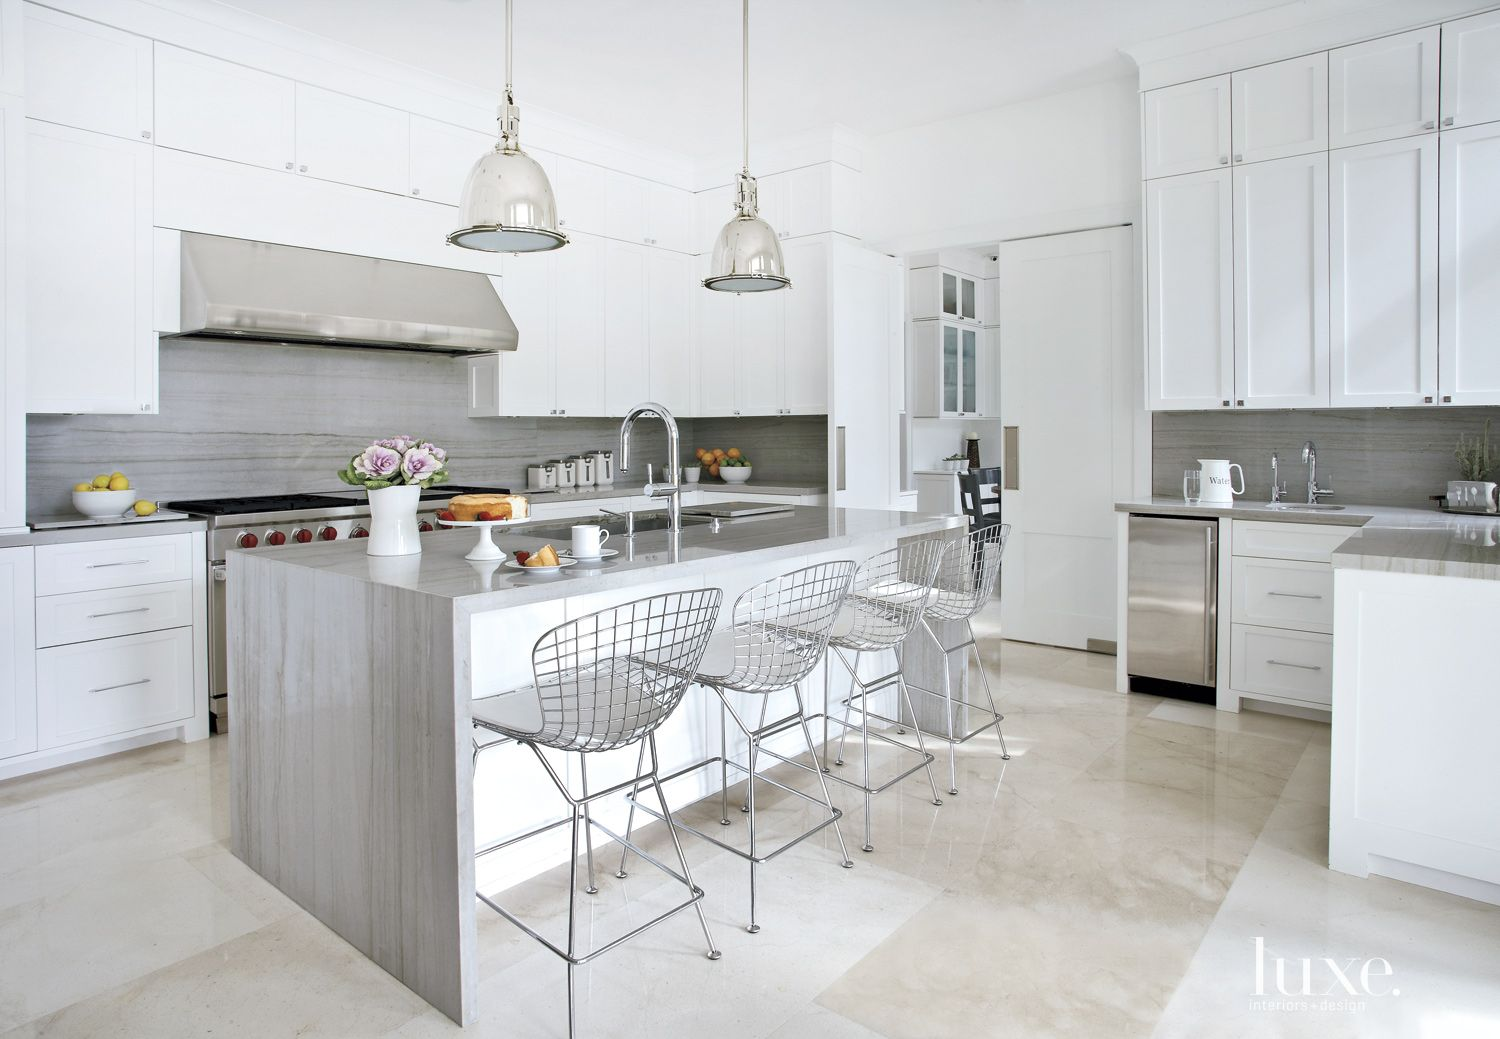 Contemporary White Kitchen with Gray Stone Backsplash and Countertops